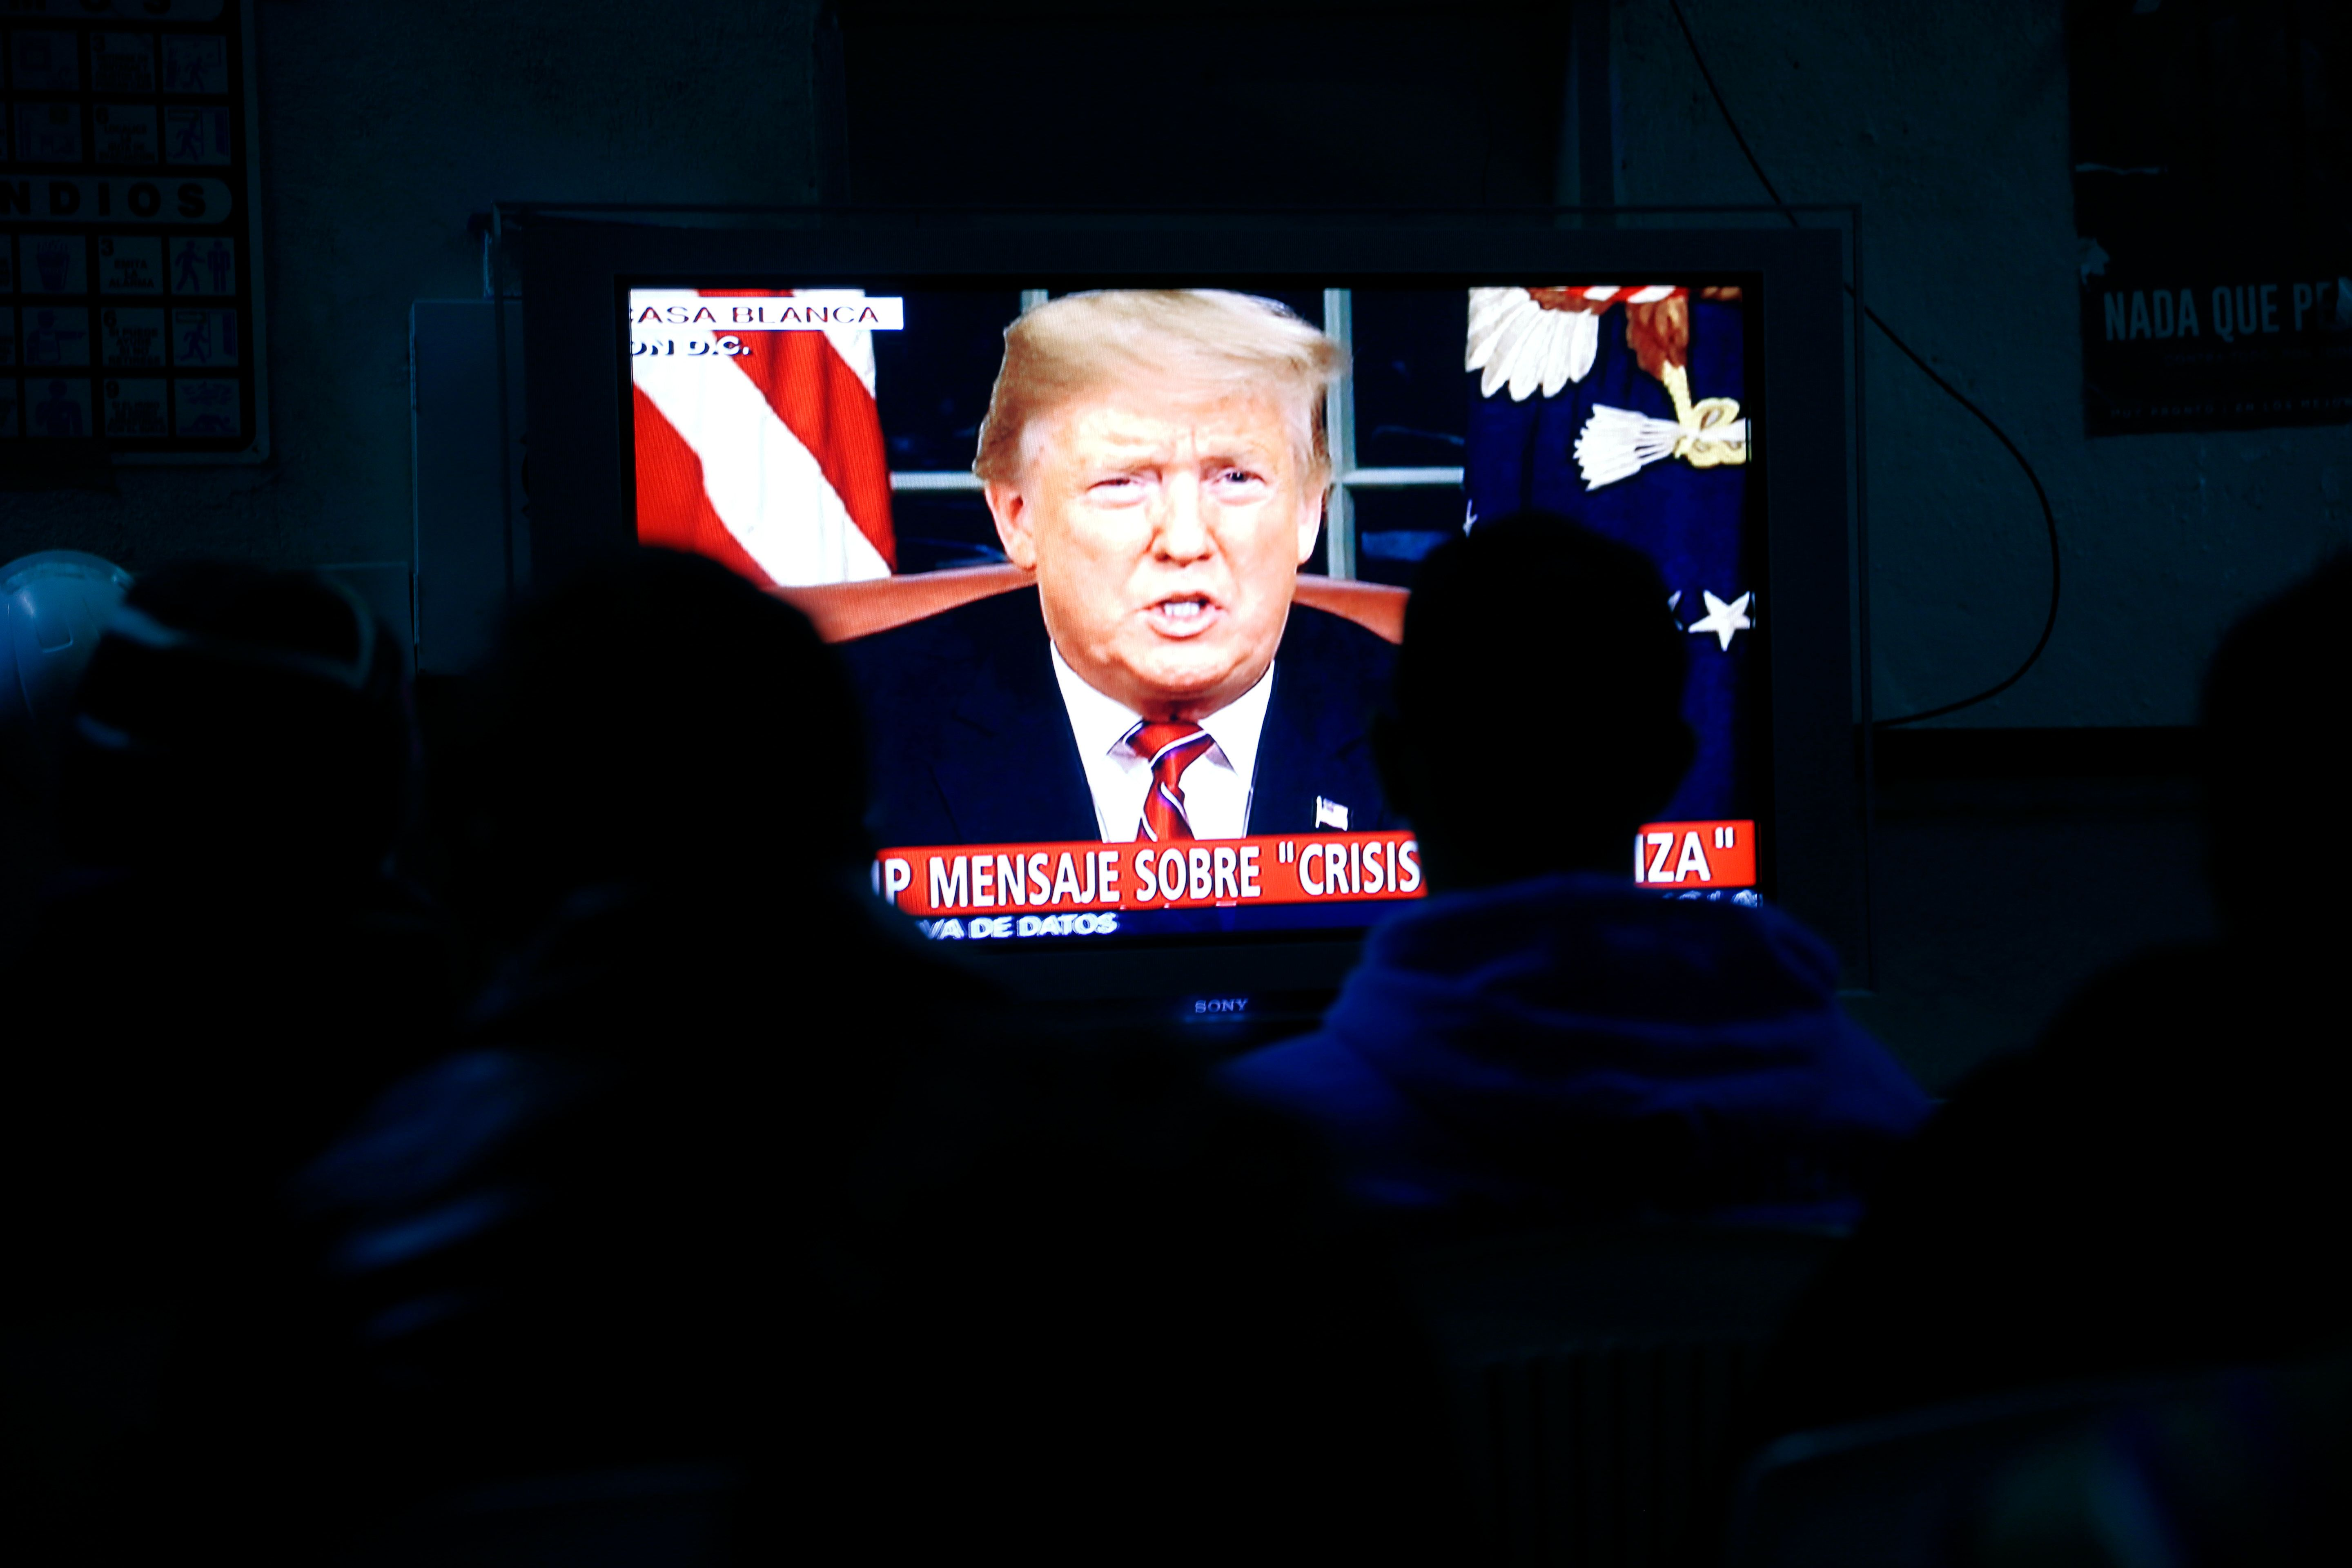 Migrants mainly from Mexico and Central America look on as U.S. President Donald Trump gives a prime-time address about border security Tuesday, Jan. 8, 2019, watching from a border migrant shelter in Tijuana, Mexico. (AP Photo/Gregory Bull)